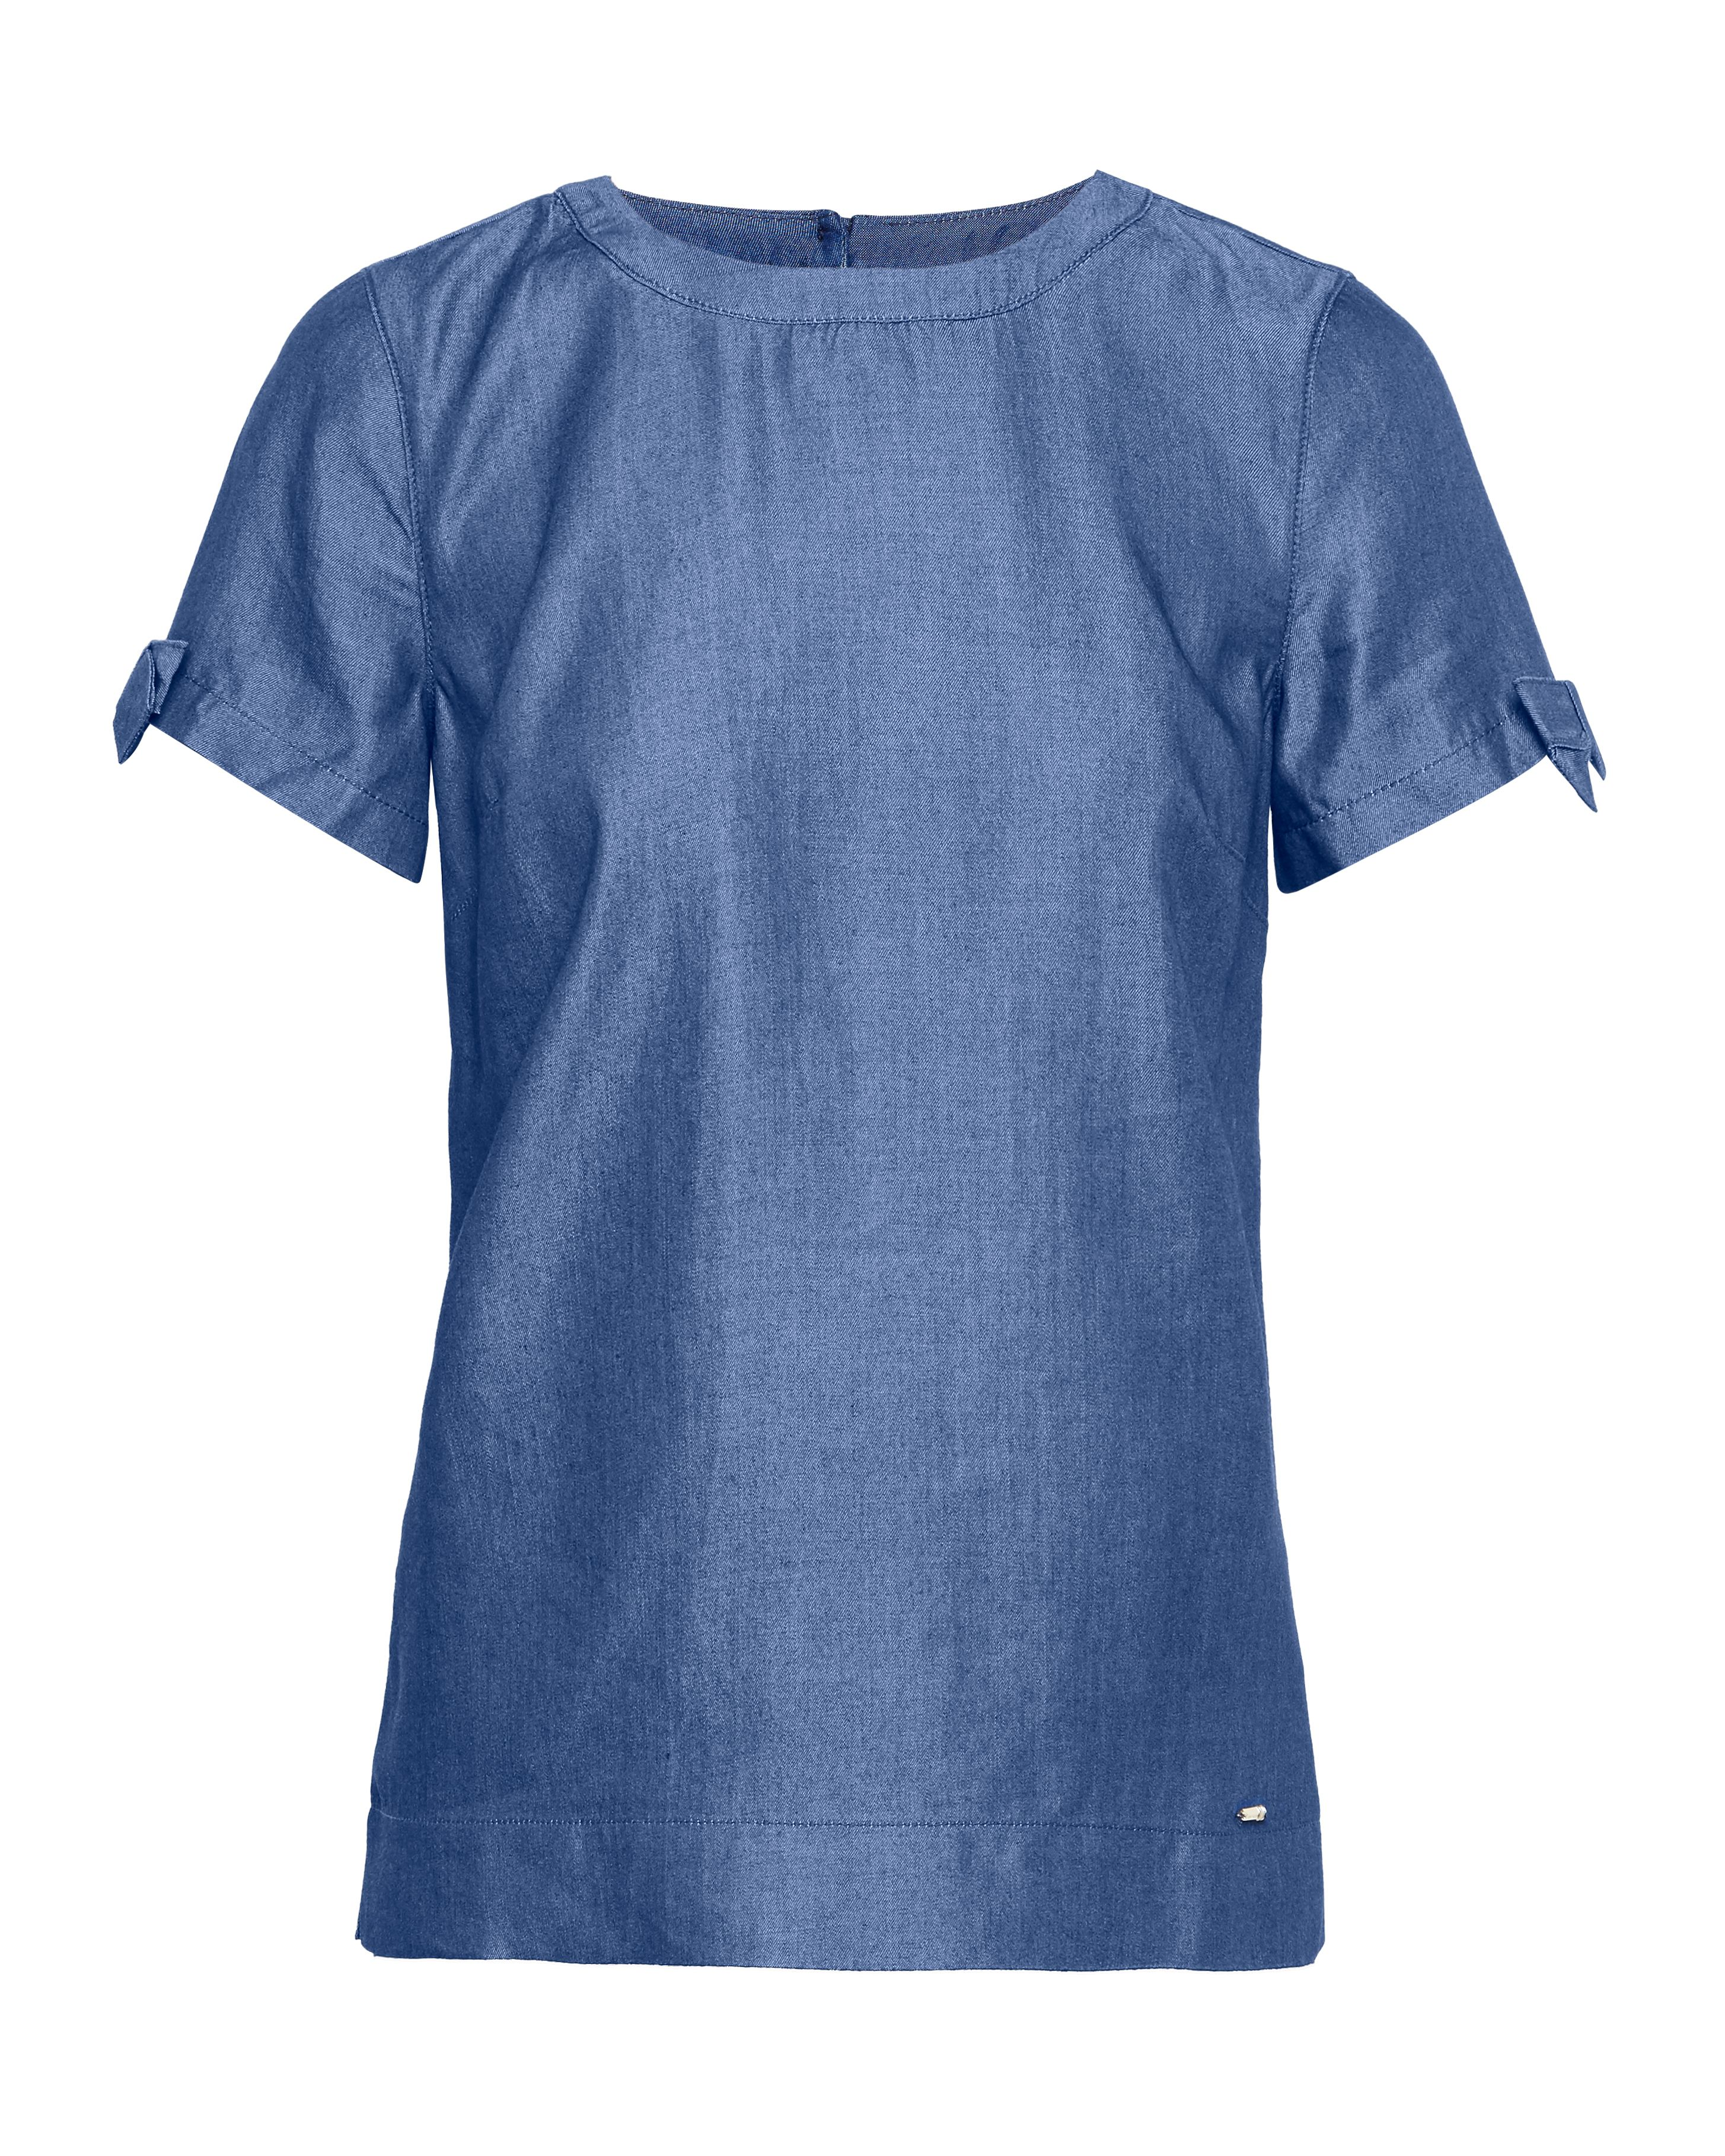 Ted Baker Brutee Bow Tie T-Shirt, Blue